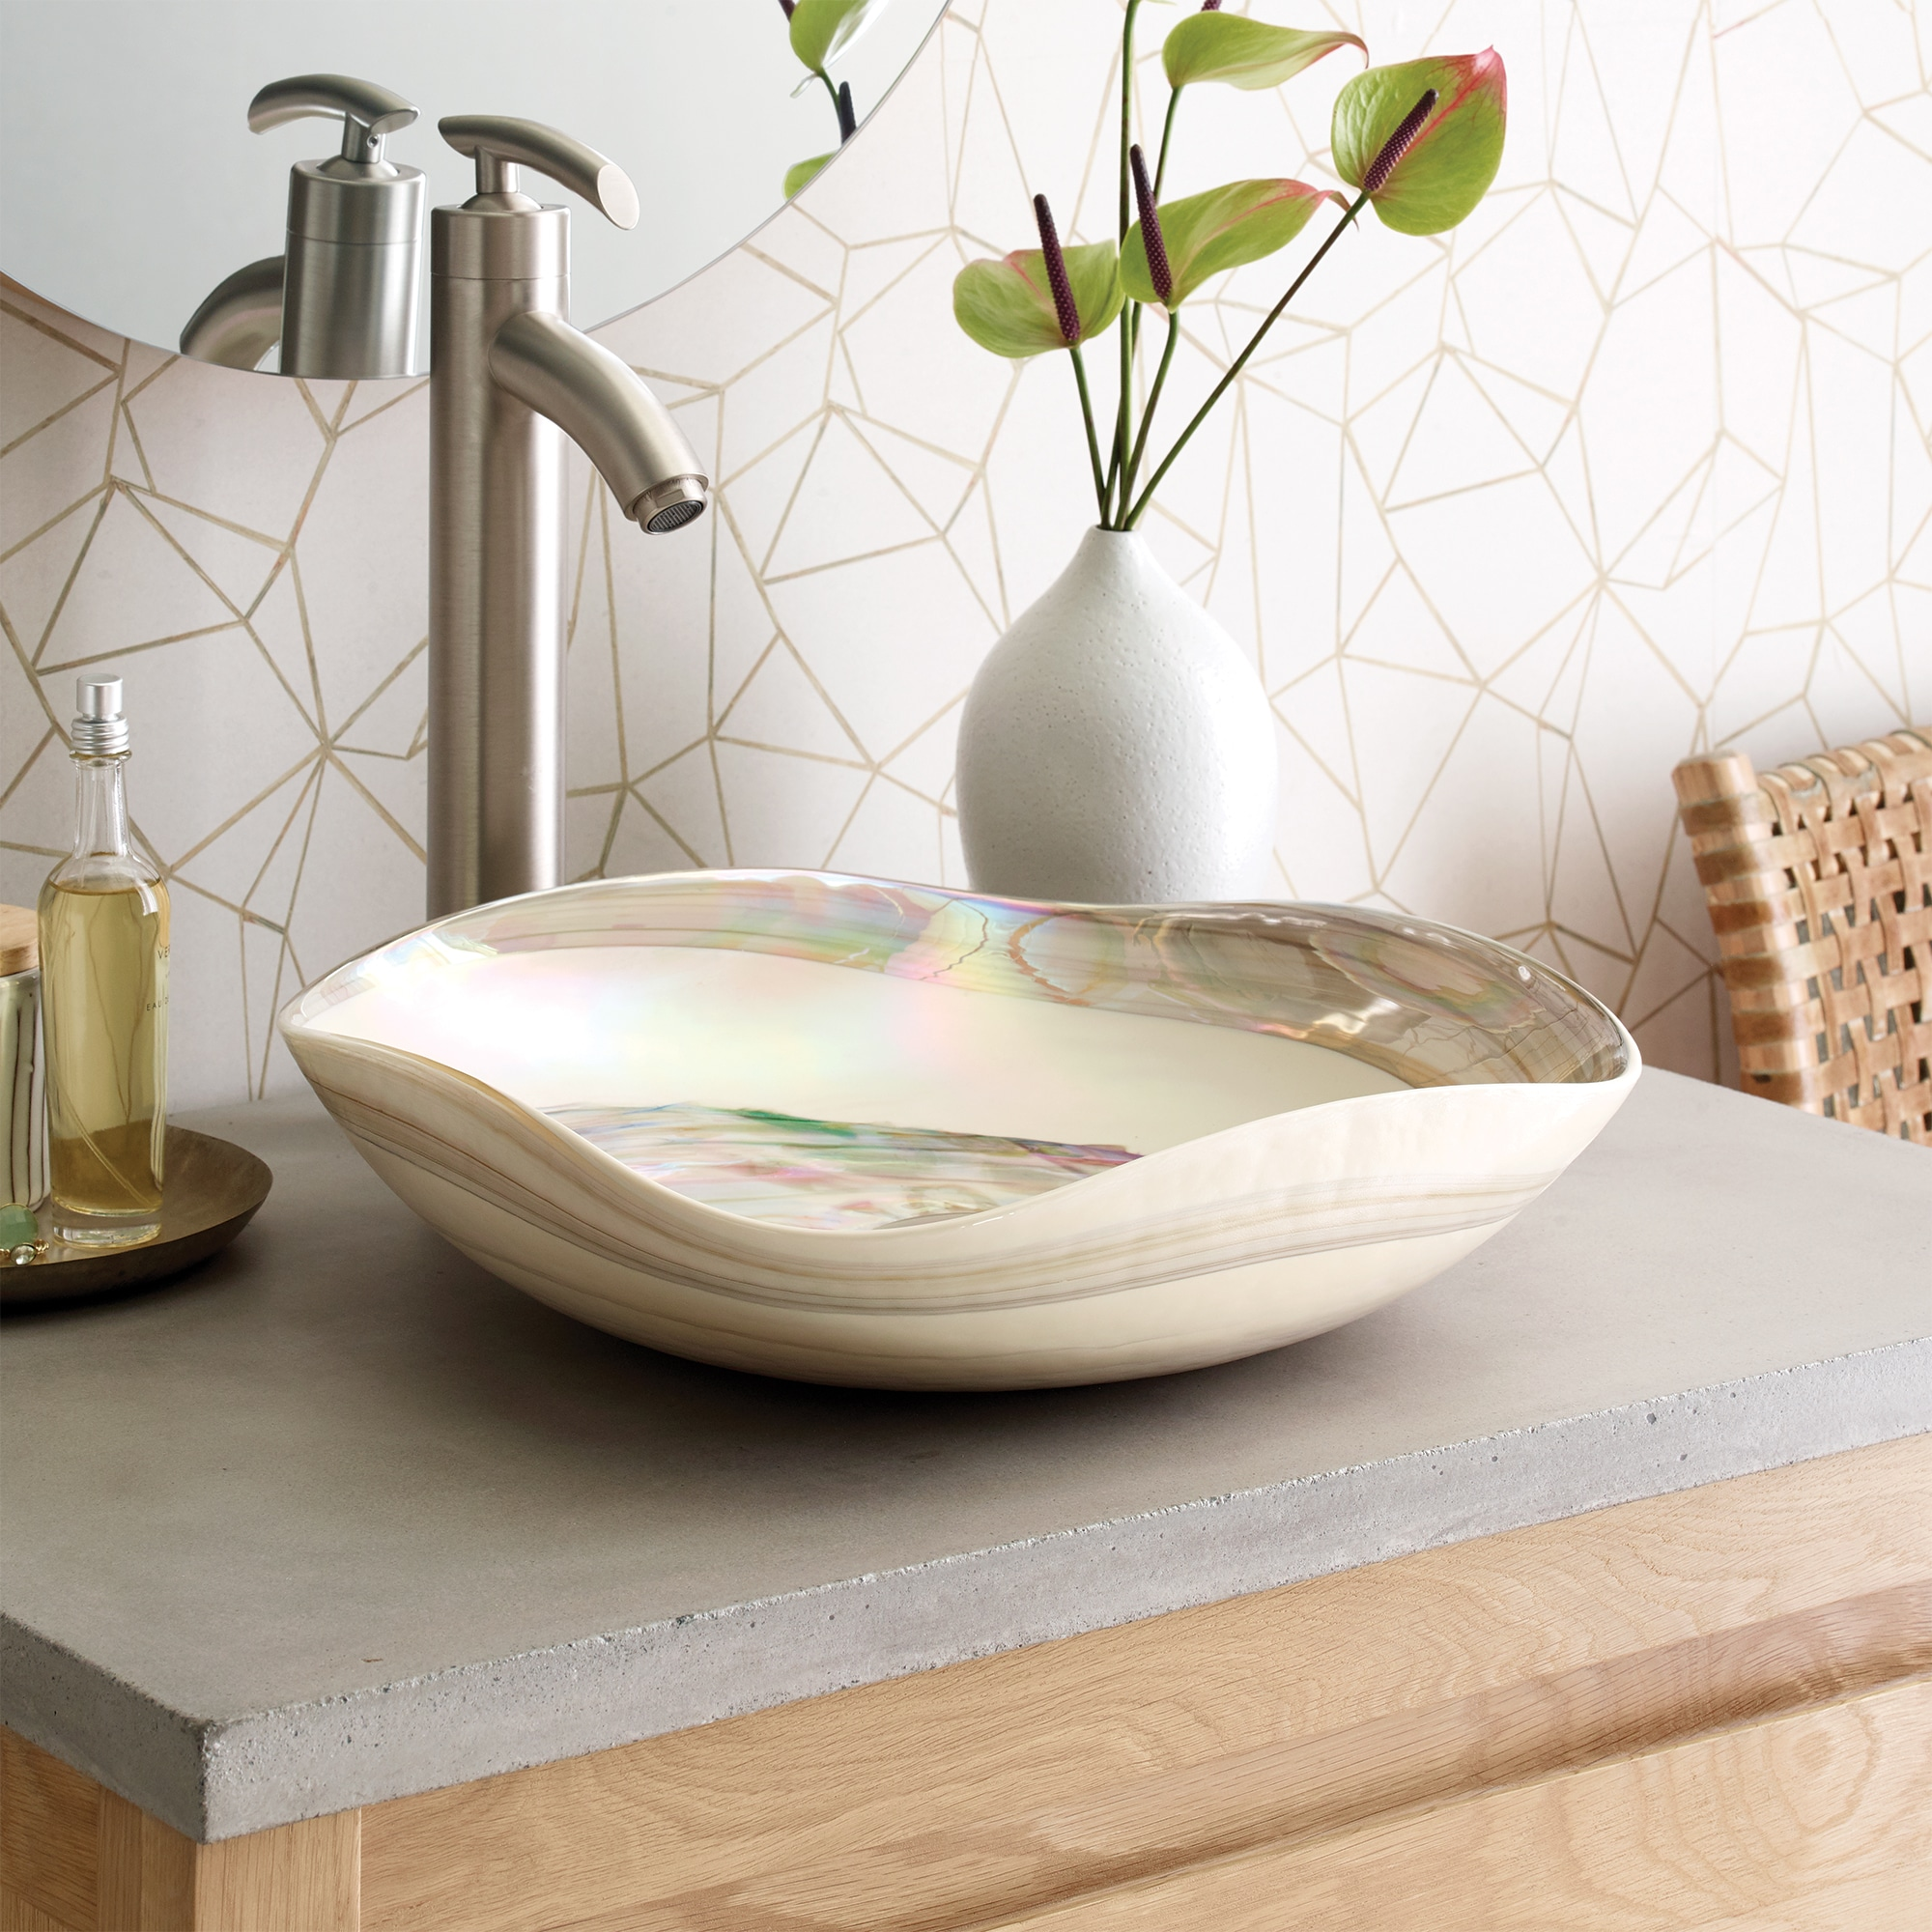 Lido Glass Vessel Sink in Abalone (MG1515-AE)